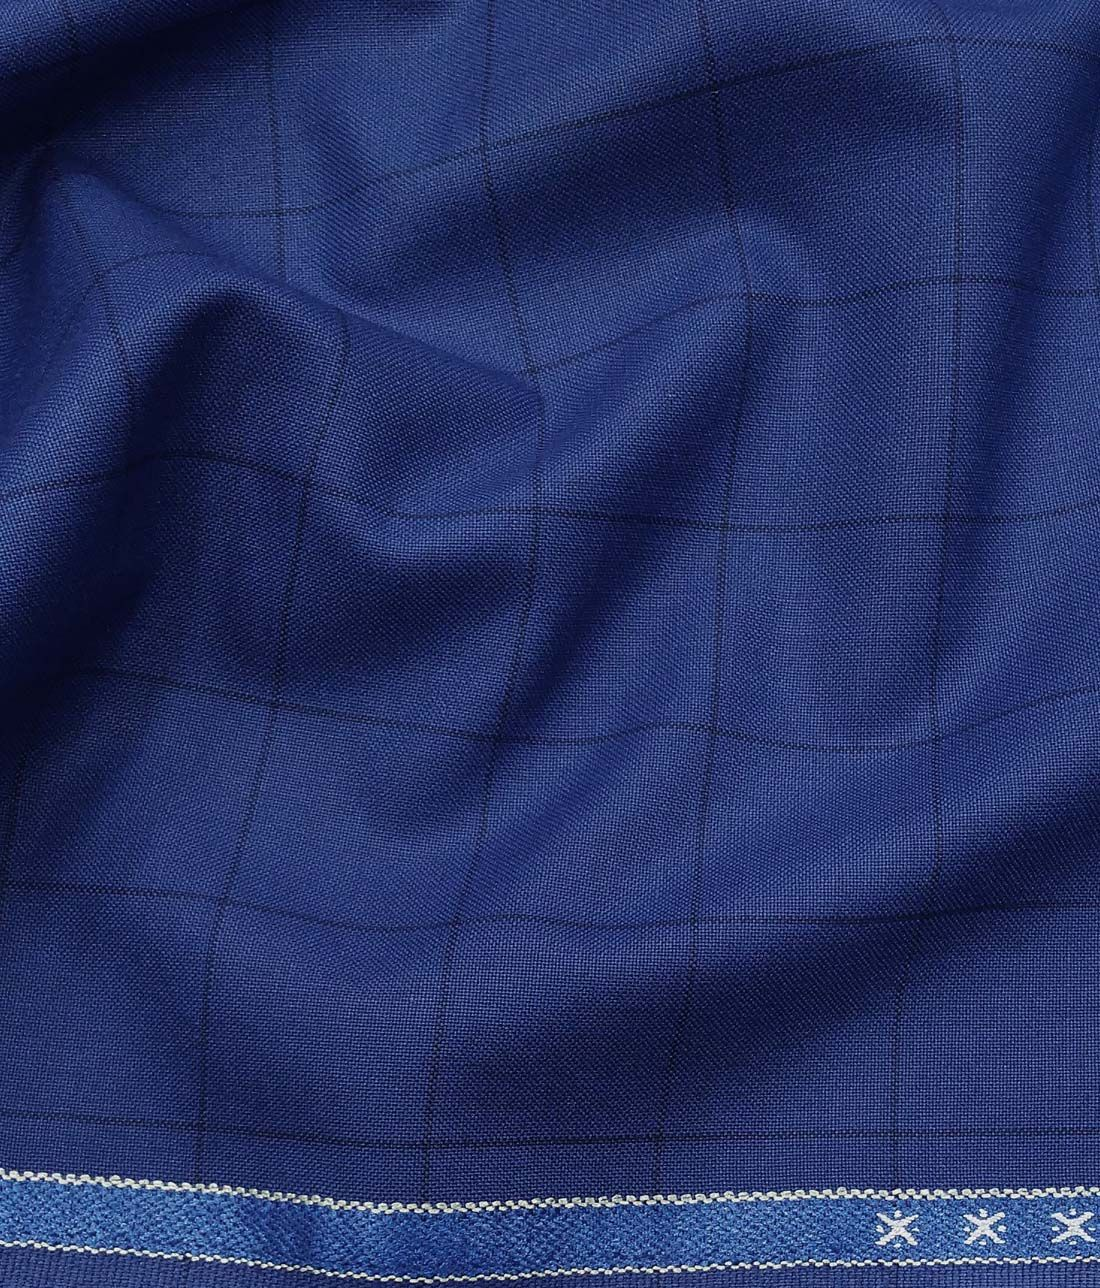 9a26f1402 Combo of Raymond Royal Blue Checks Trouser Fabric With Exquisite White  Cotton Blend Shirt Fabric (Unstitched)